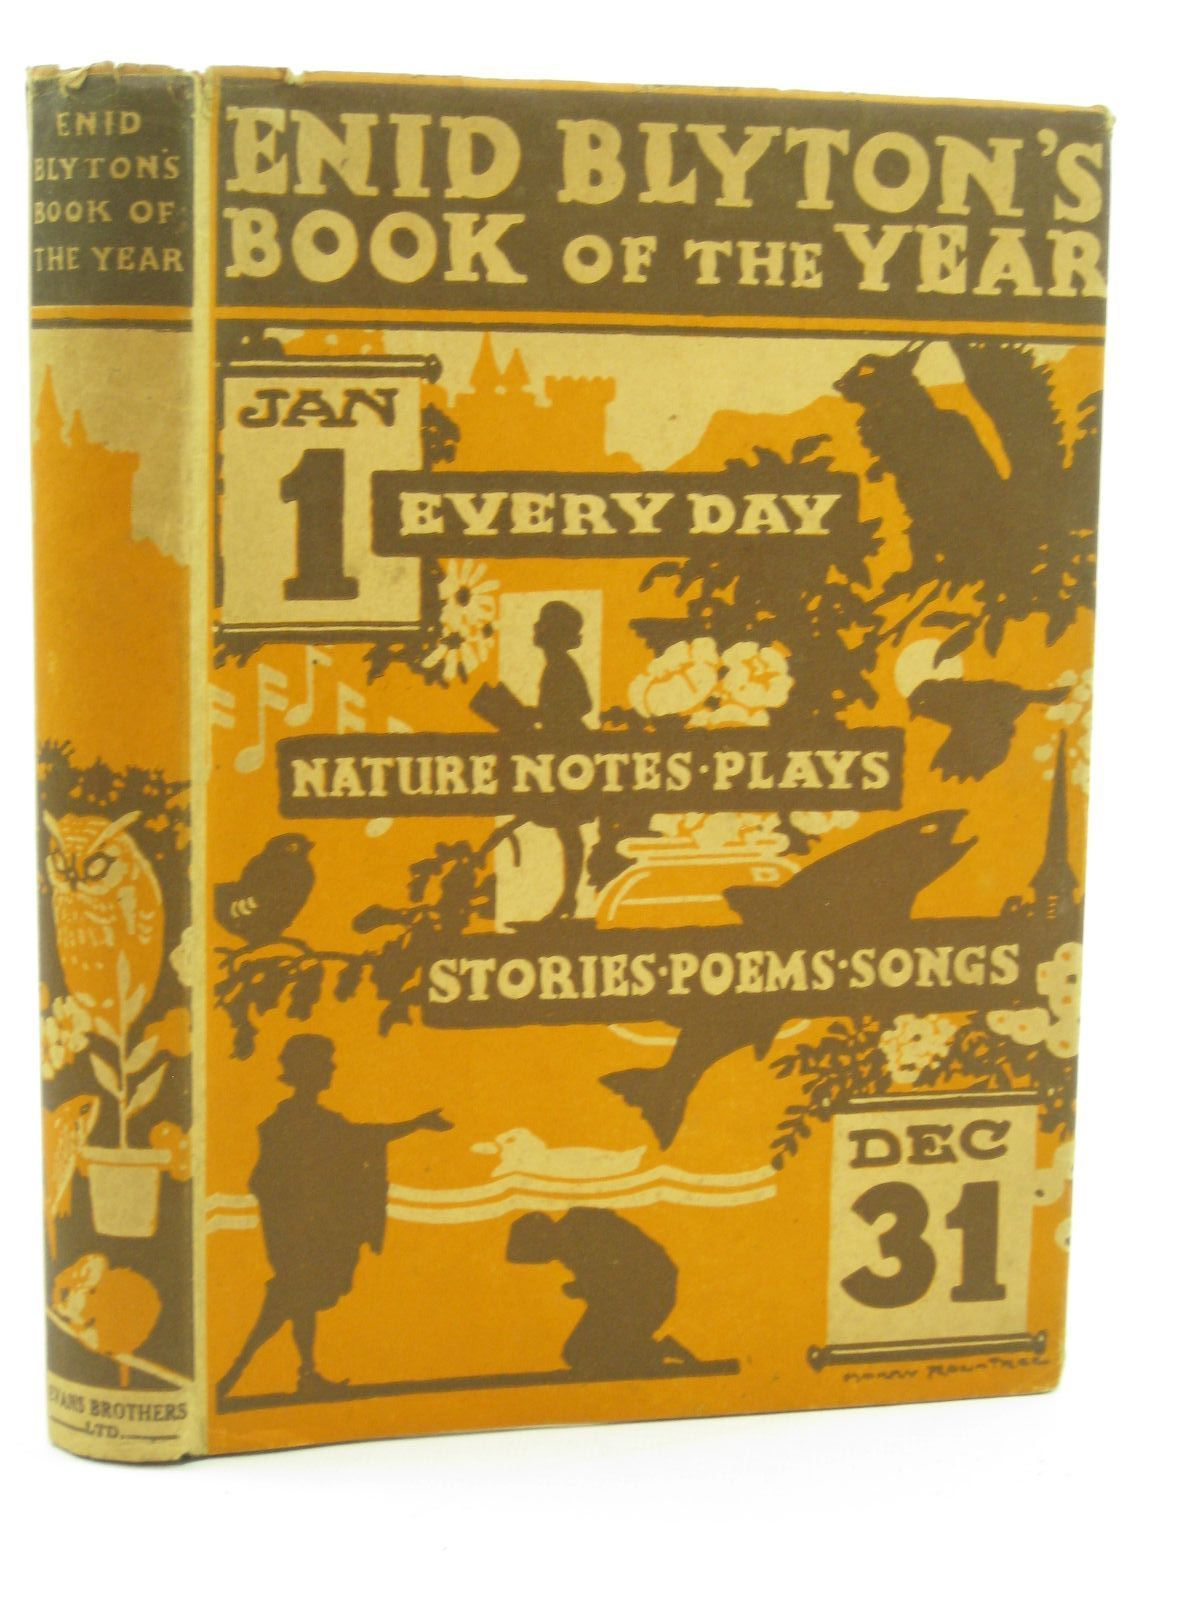 Photo of ENID BLYTON'S BOOK OF THE YEAR written by Blyton, Enid illustrated by Rountree, Harry published by Evans Brothers Limited (STOCK CODE: 1316814)  for sale by Stella & Rose's Books